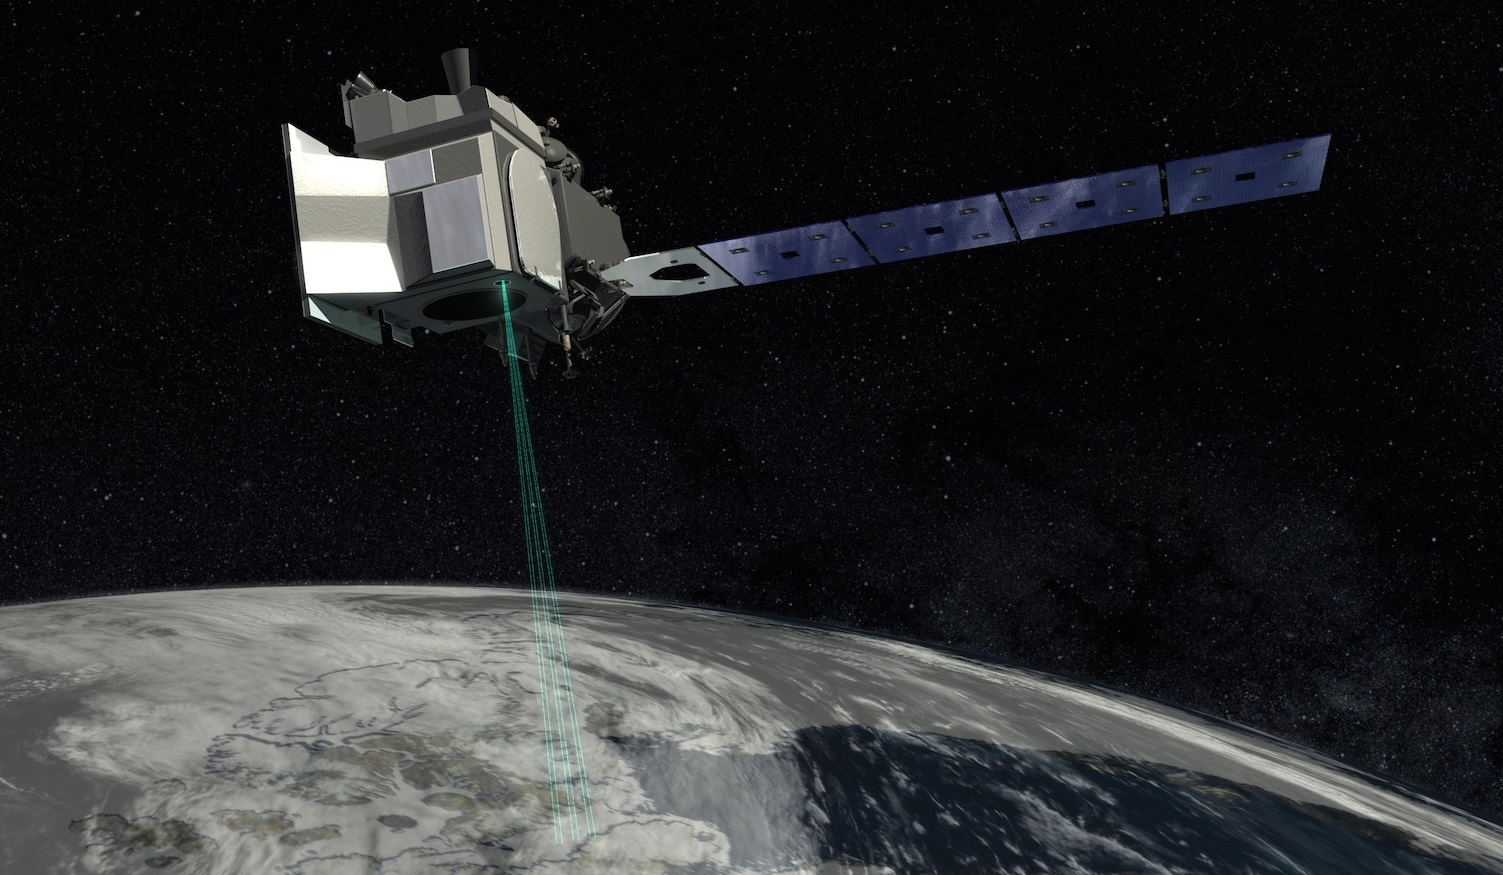 NASA invites media to view launch of ICESat-2 from west coast – Climate Change: Vital Signs of the Planet